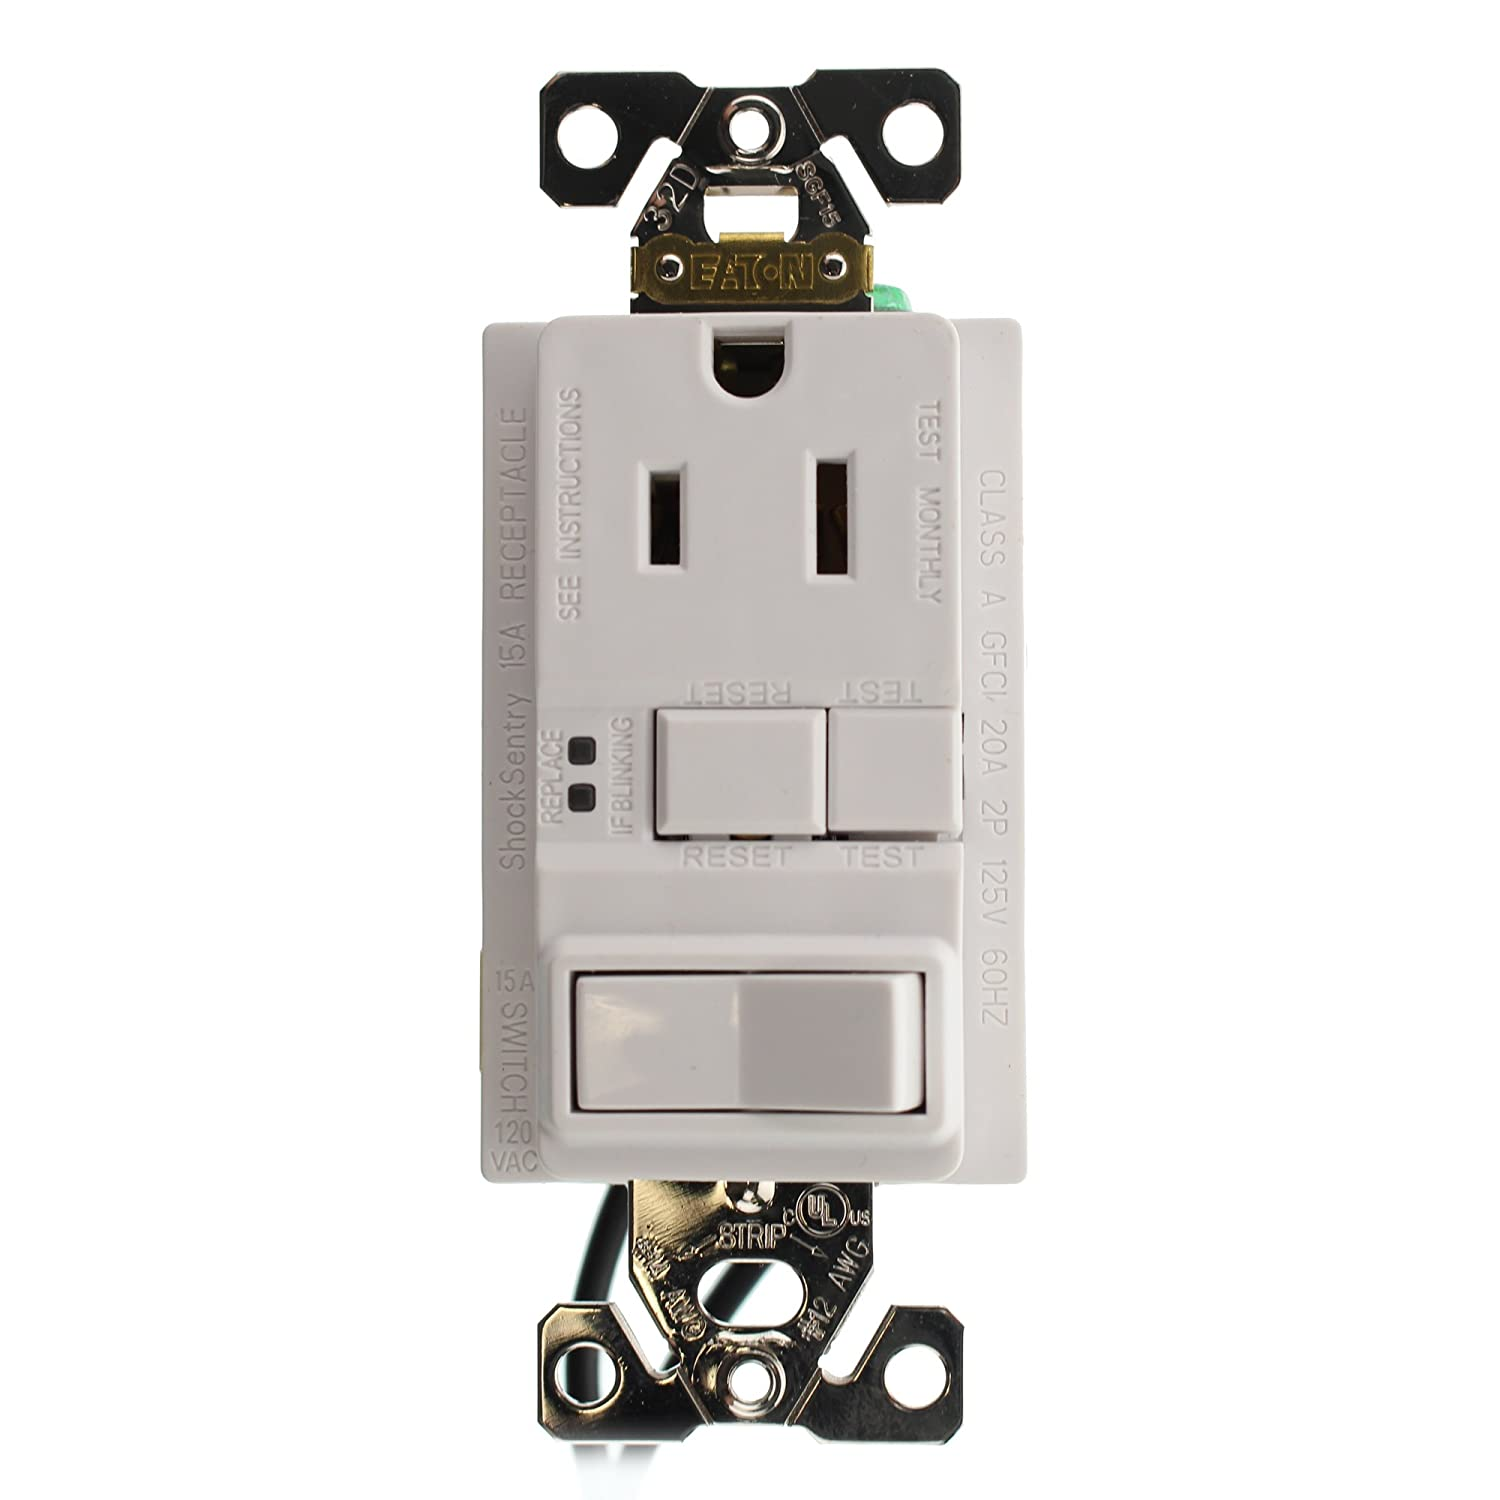 Hubbell GFSPST15WZ Combo GFCI Outlet & 1P Switch, Self-Test, 15-Amp ...